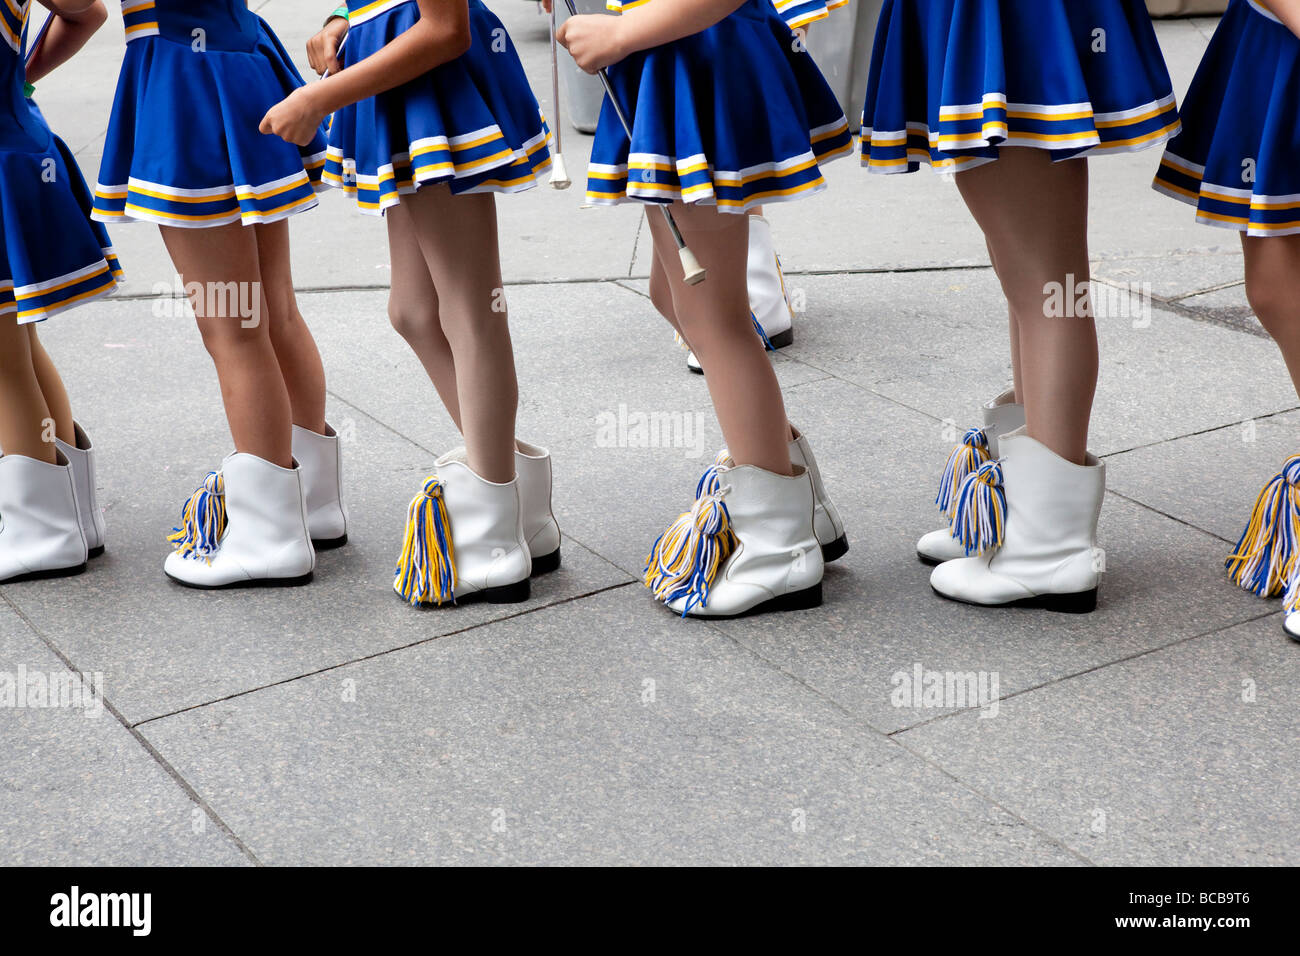 Majorettes on their way to the Puerto Rican day parade - Stock Image